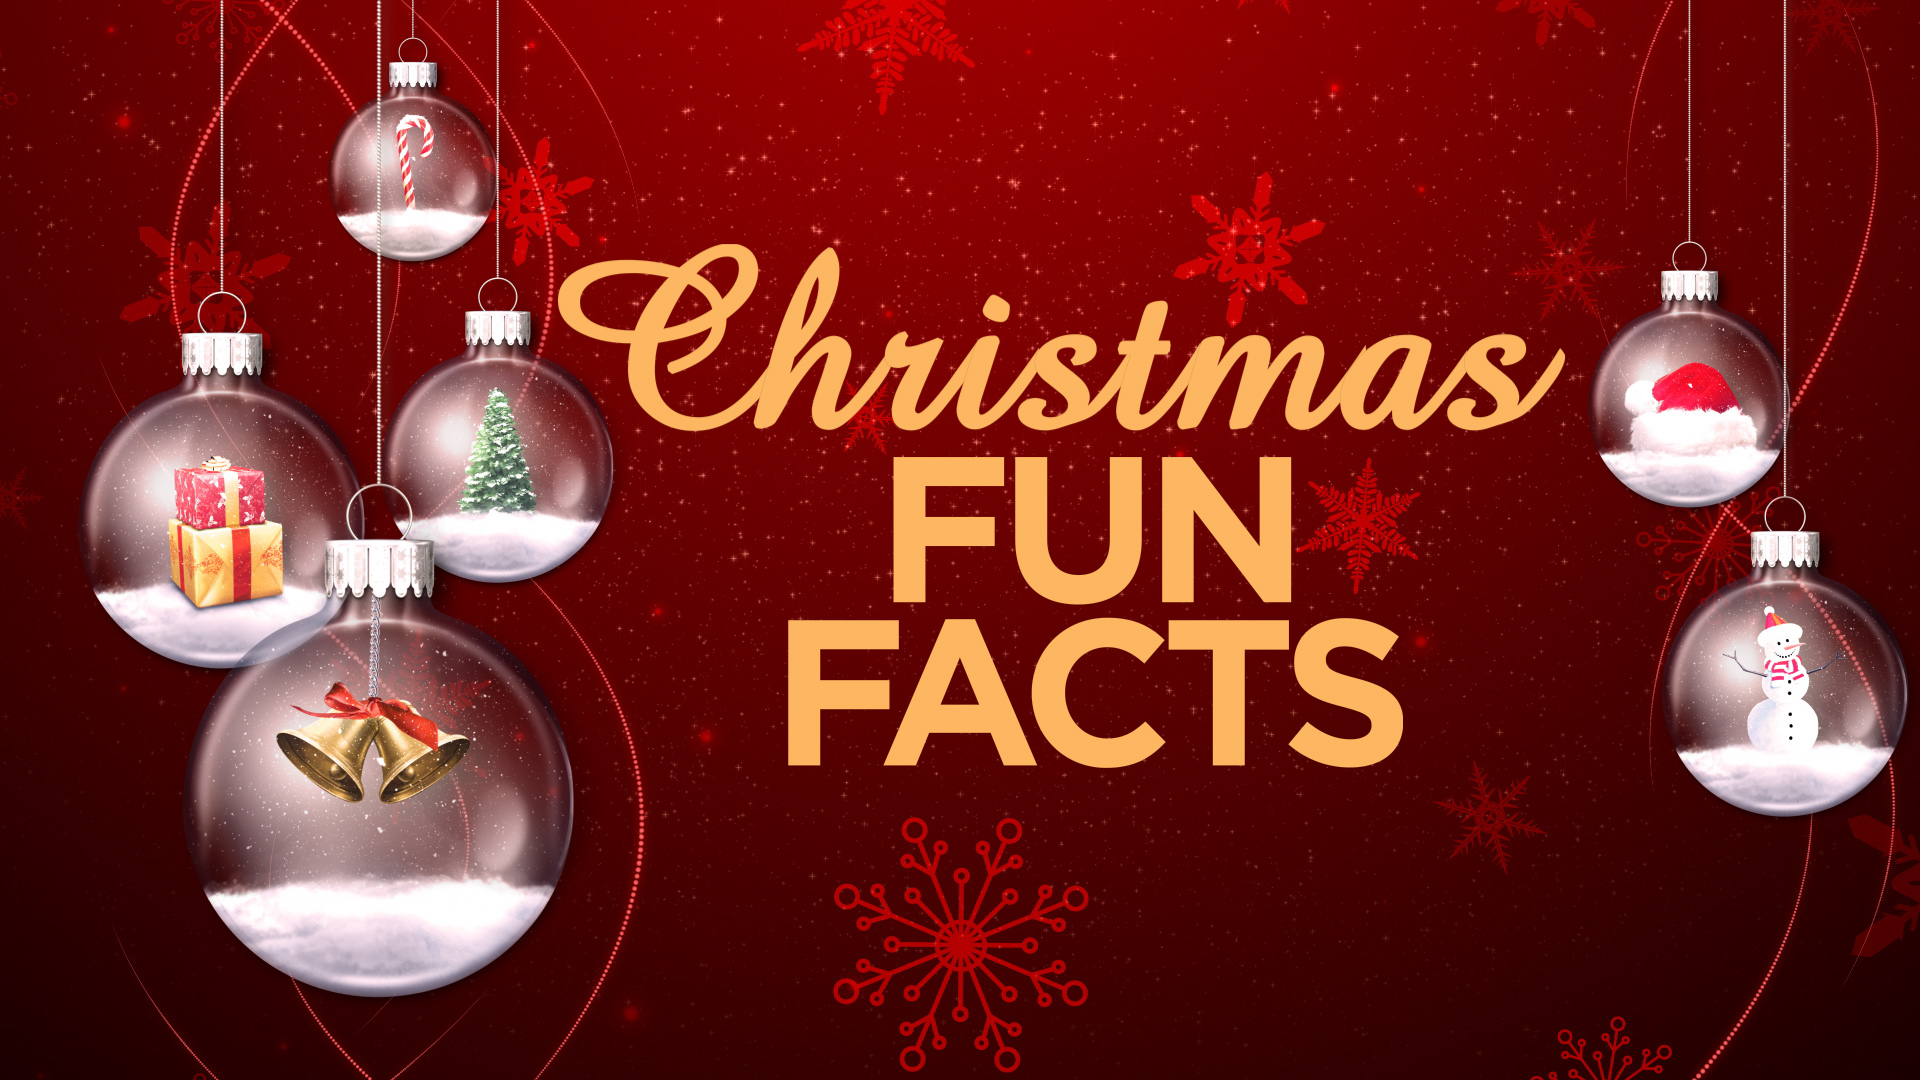 Christmas Fun Facts.Kicking Back With Jersey Joe Christmas Fun Facts Been Going